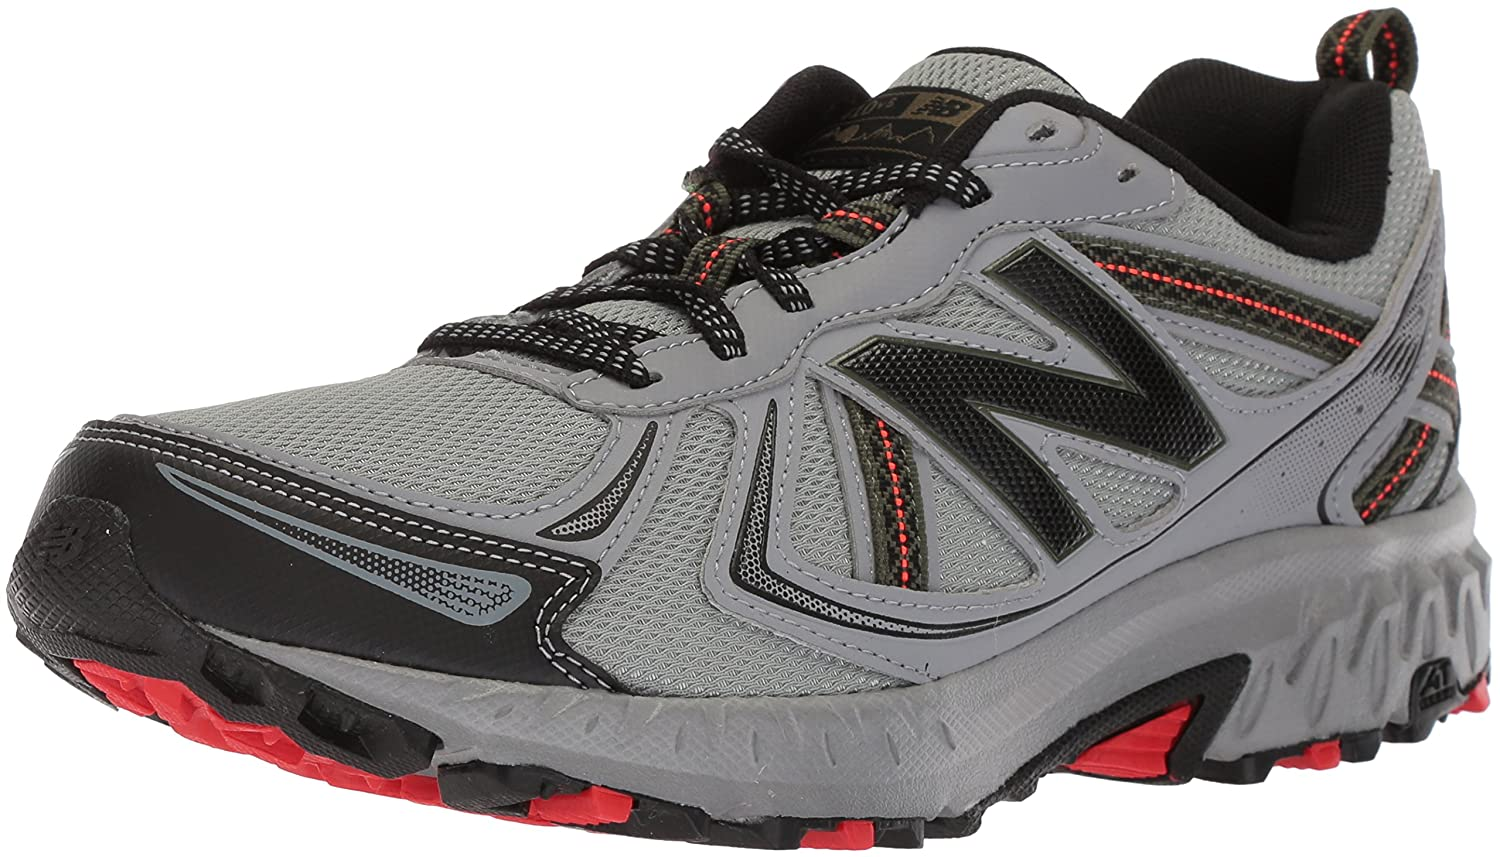 91f875c55d5 Amazon.com | New Balance Men's MT410v5 Cushioning Trail Running Shoe Runner  | Trail Running